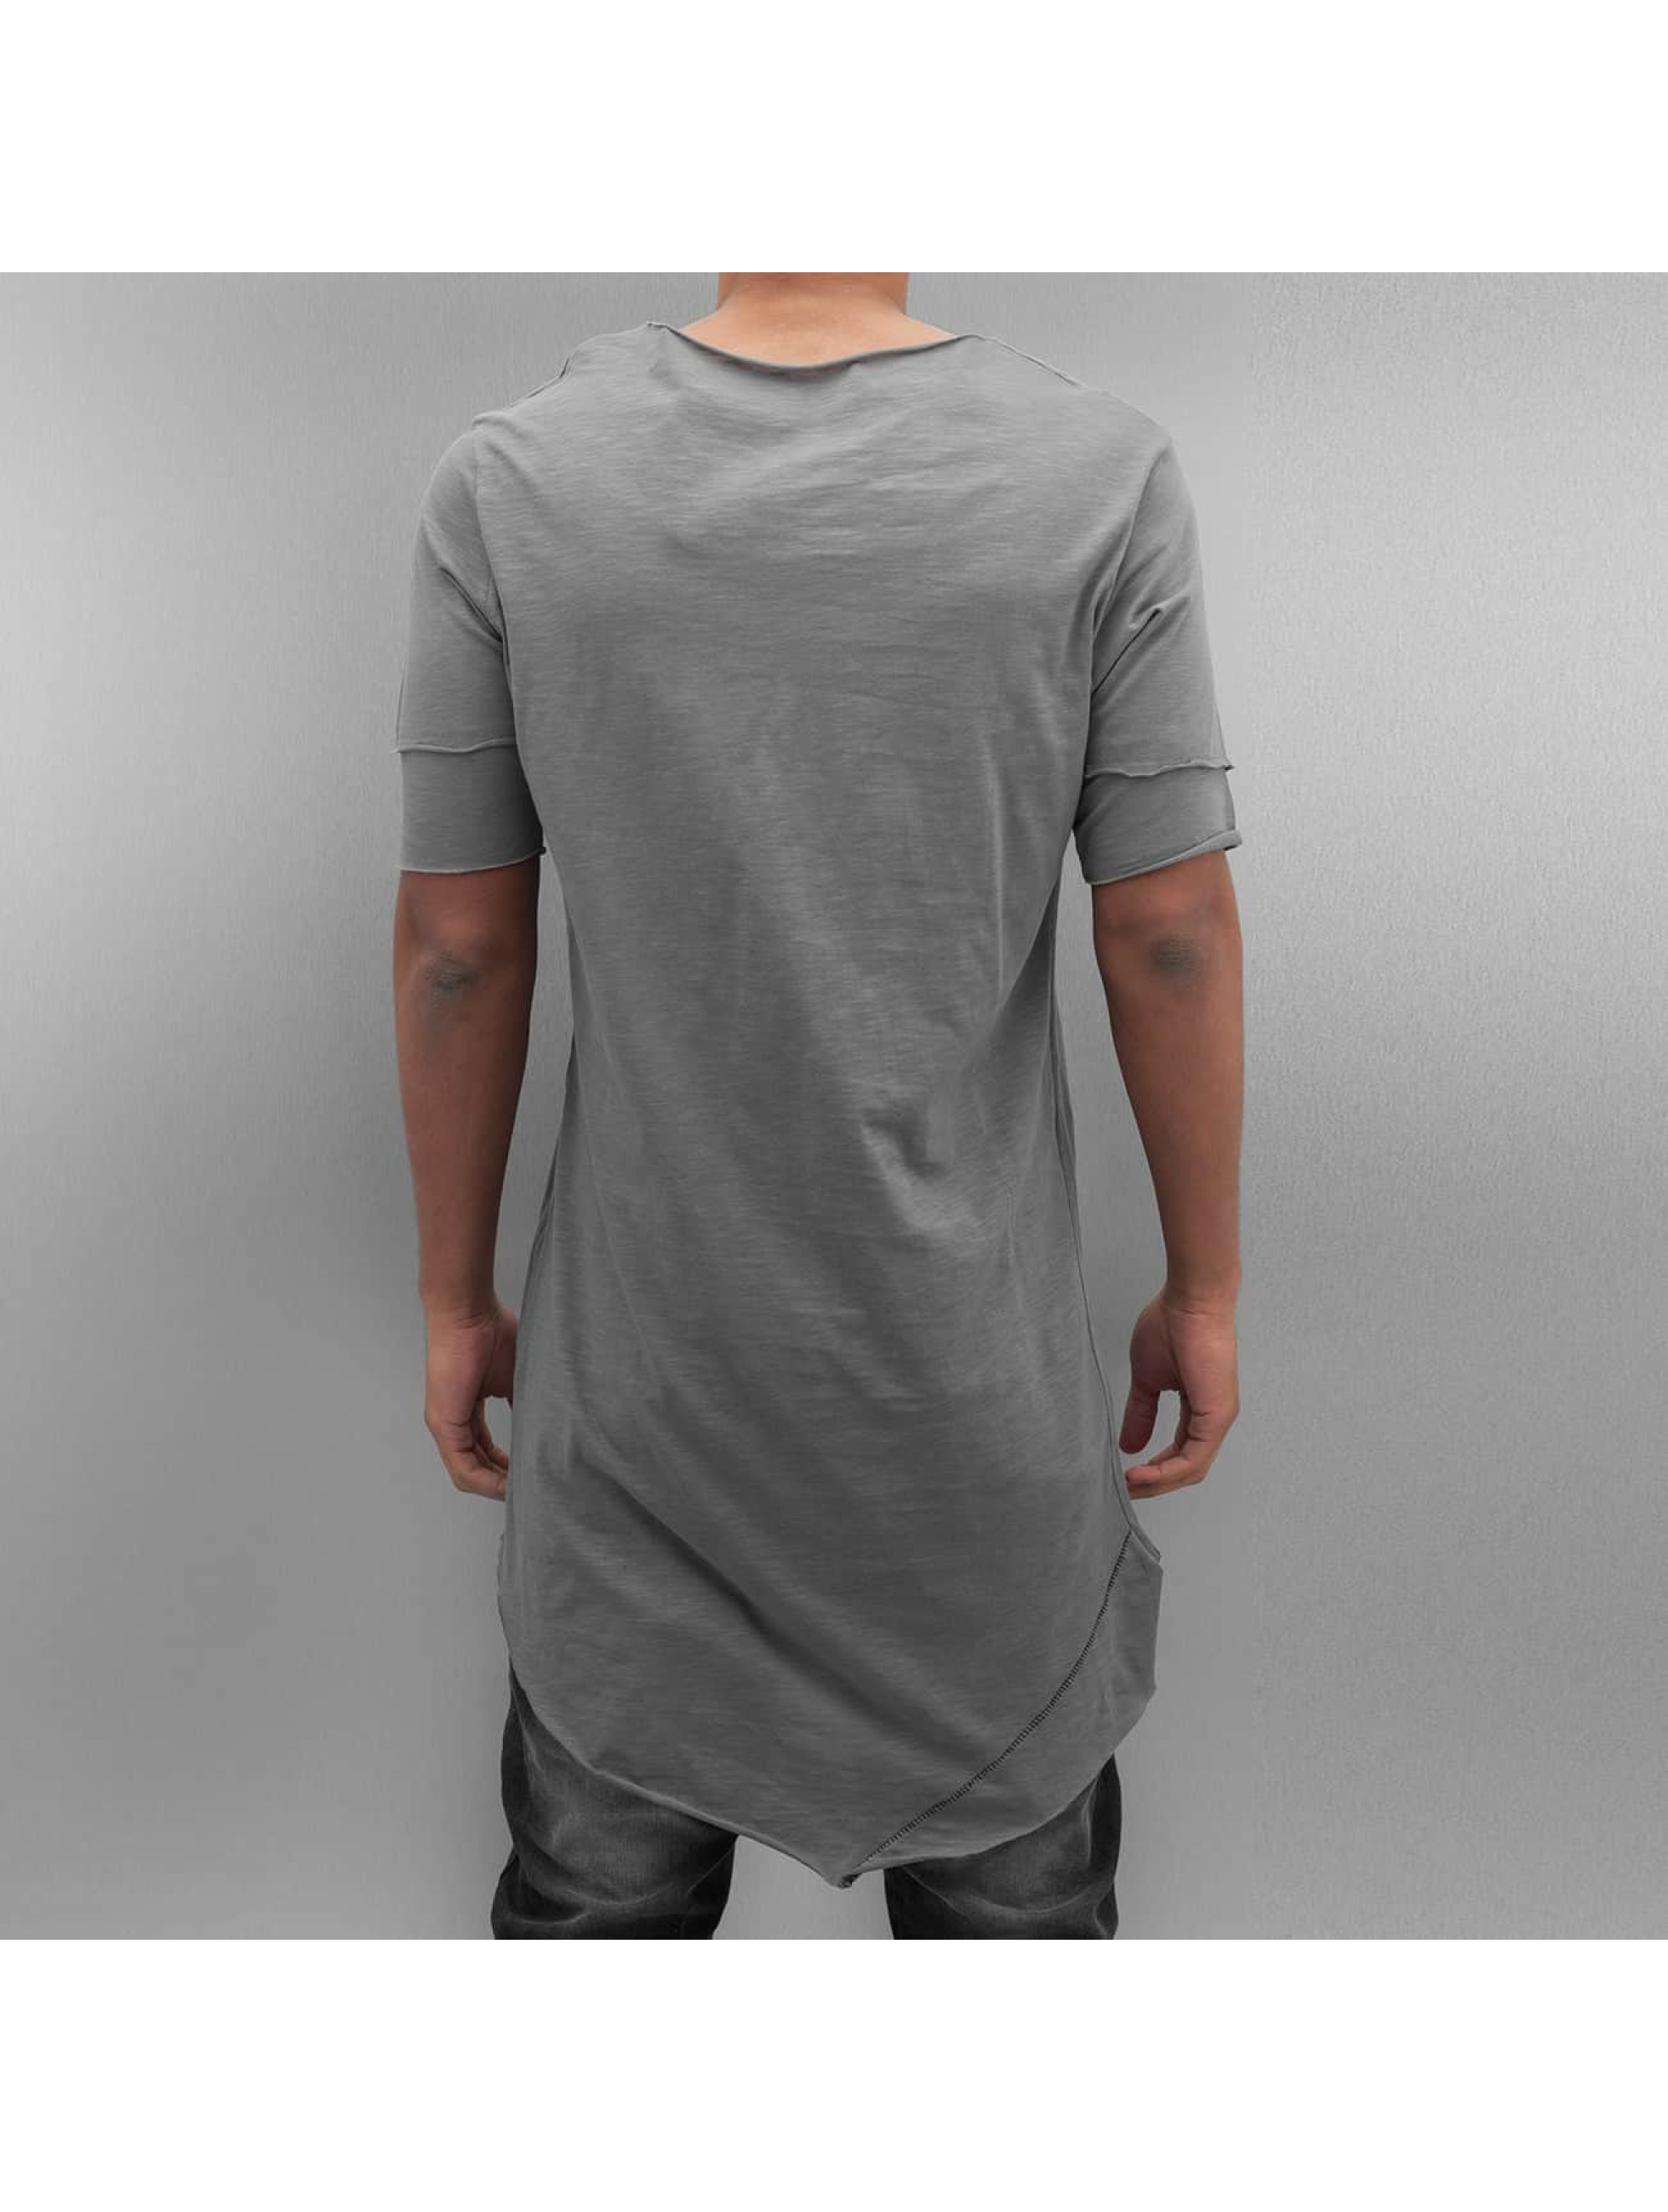 2Y T-Shirt Wichita gray